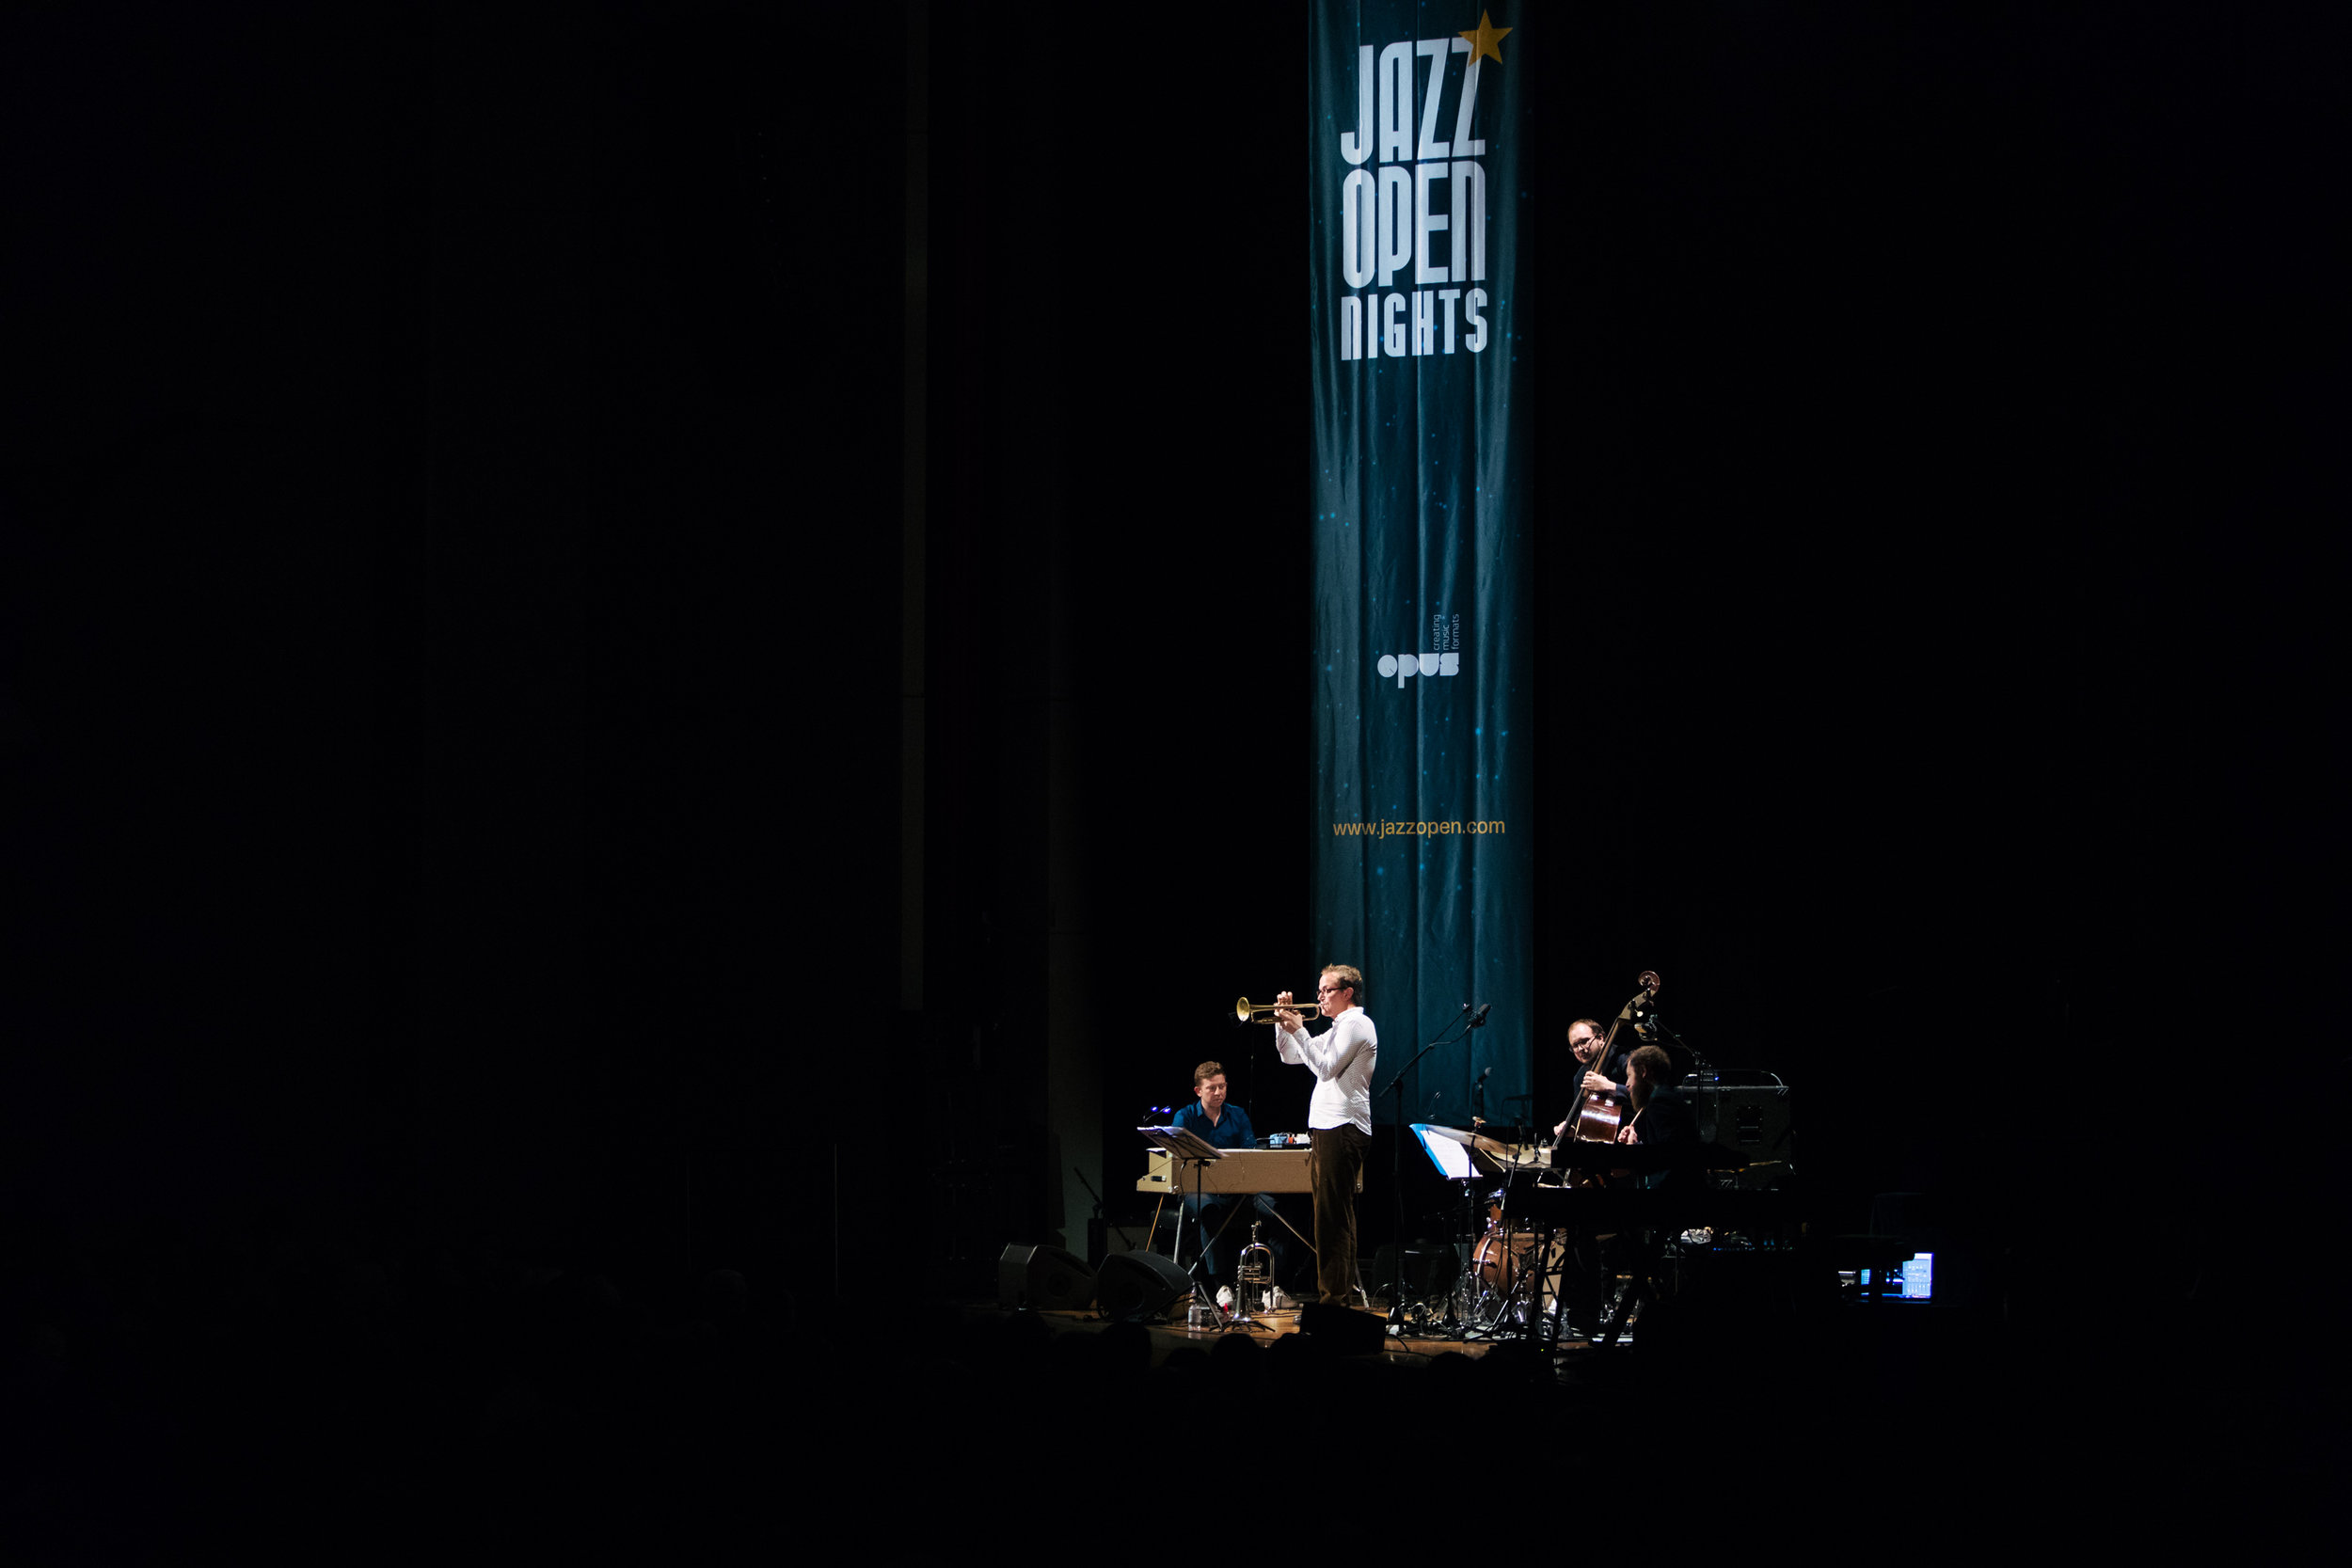 20171102_jazzopen-night-22.jpg